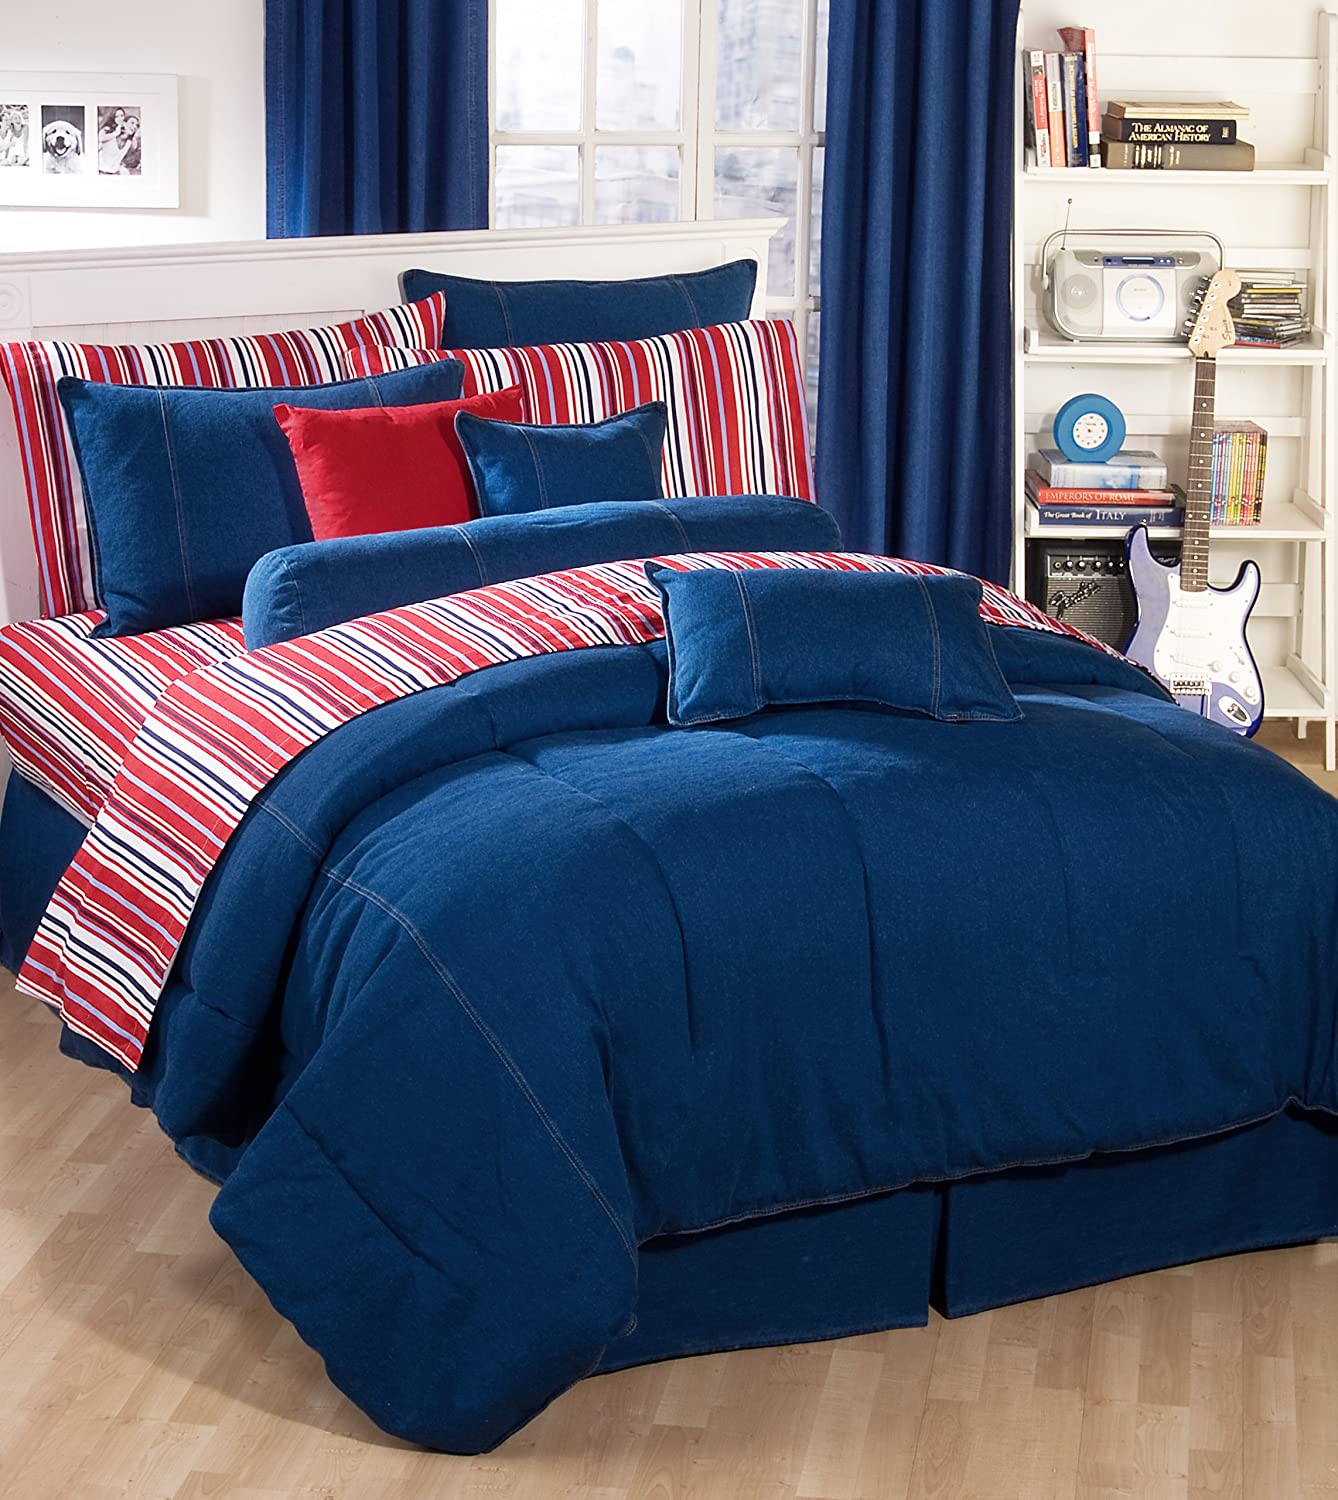 for sheets size fitted navy bedroom outstanding blue decor full comforters sheet your comforter in bed residence